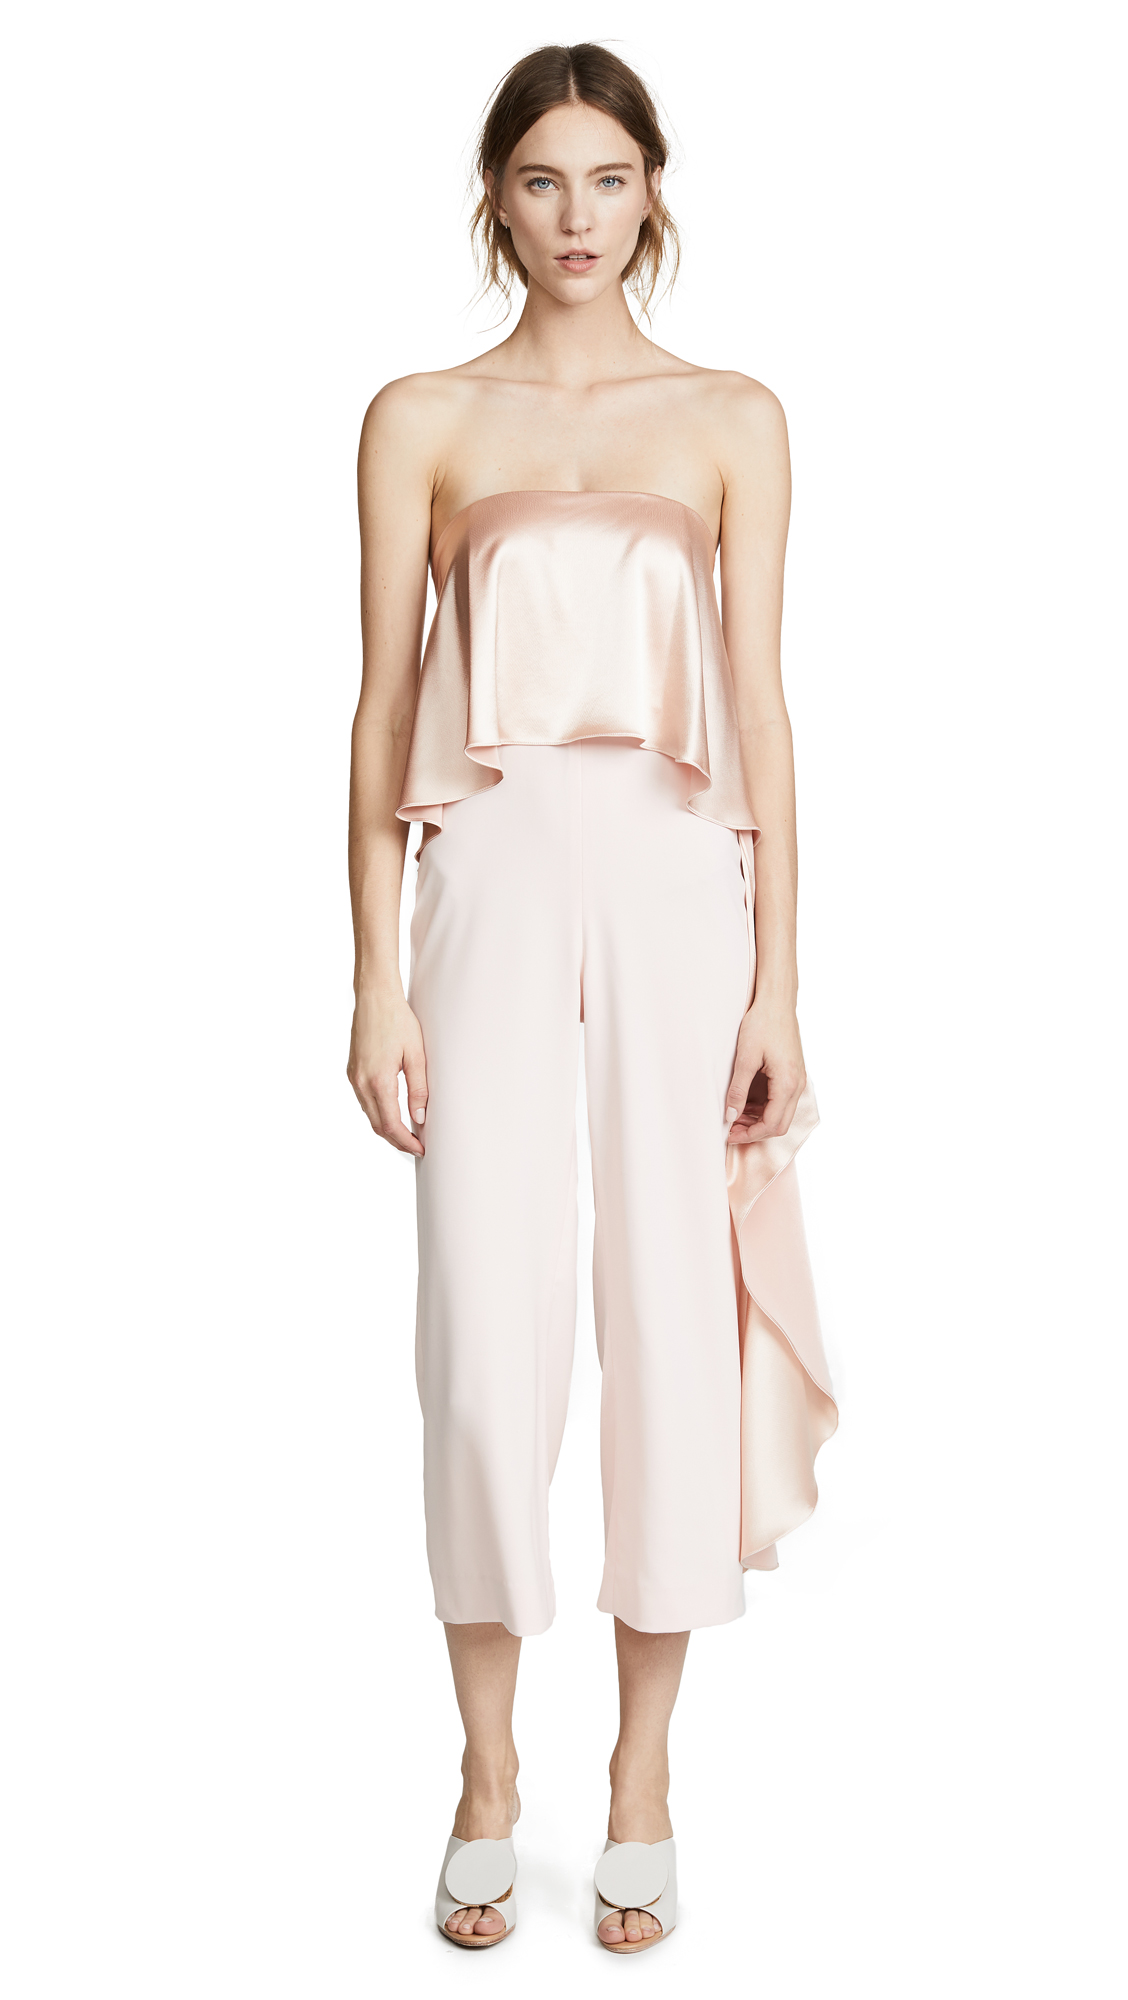 ONE BY JACQUELINE CROPPED JUMPSUIT WITH RUFFLE